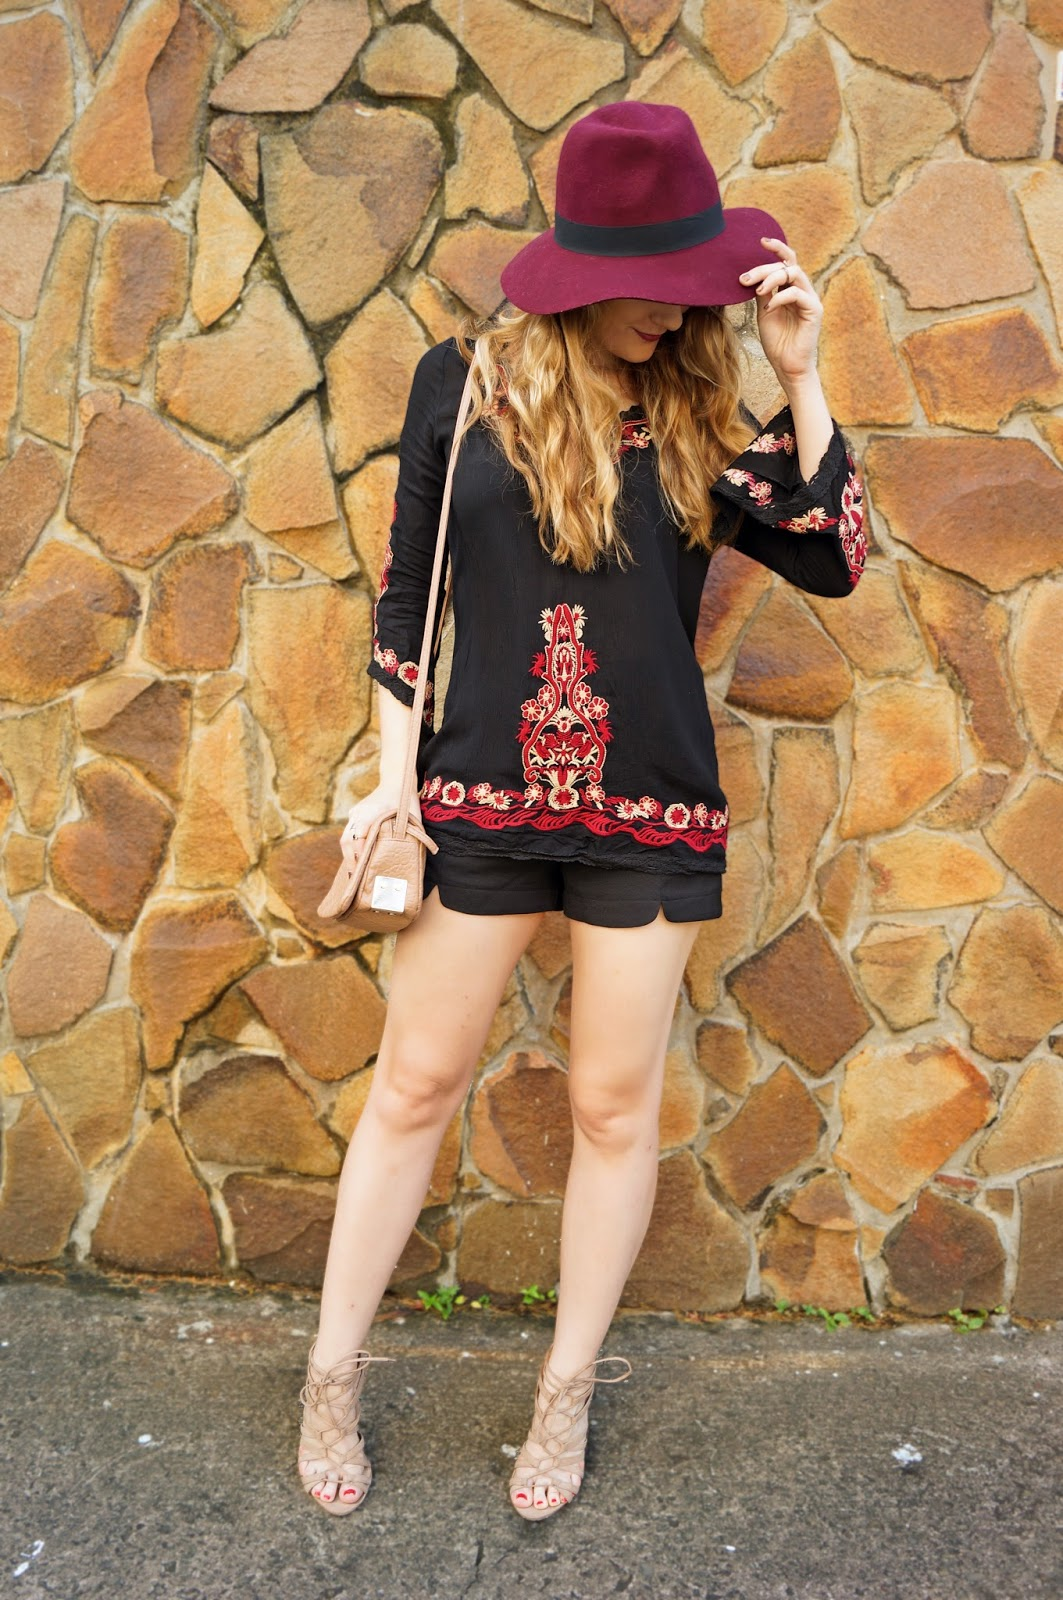 Loving this boho chic outfit!